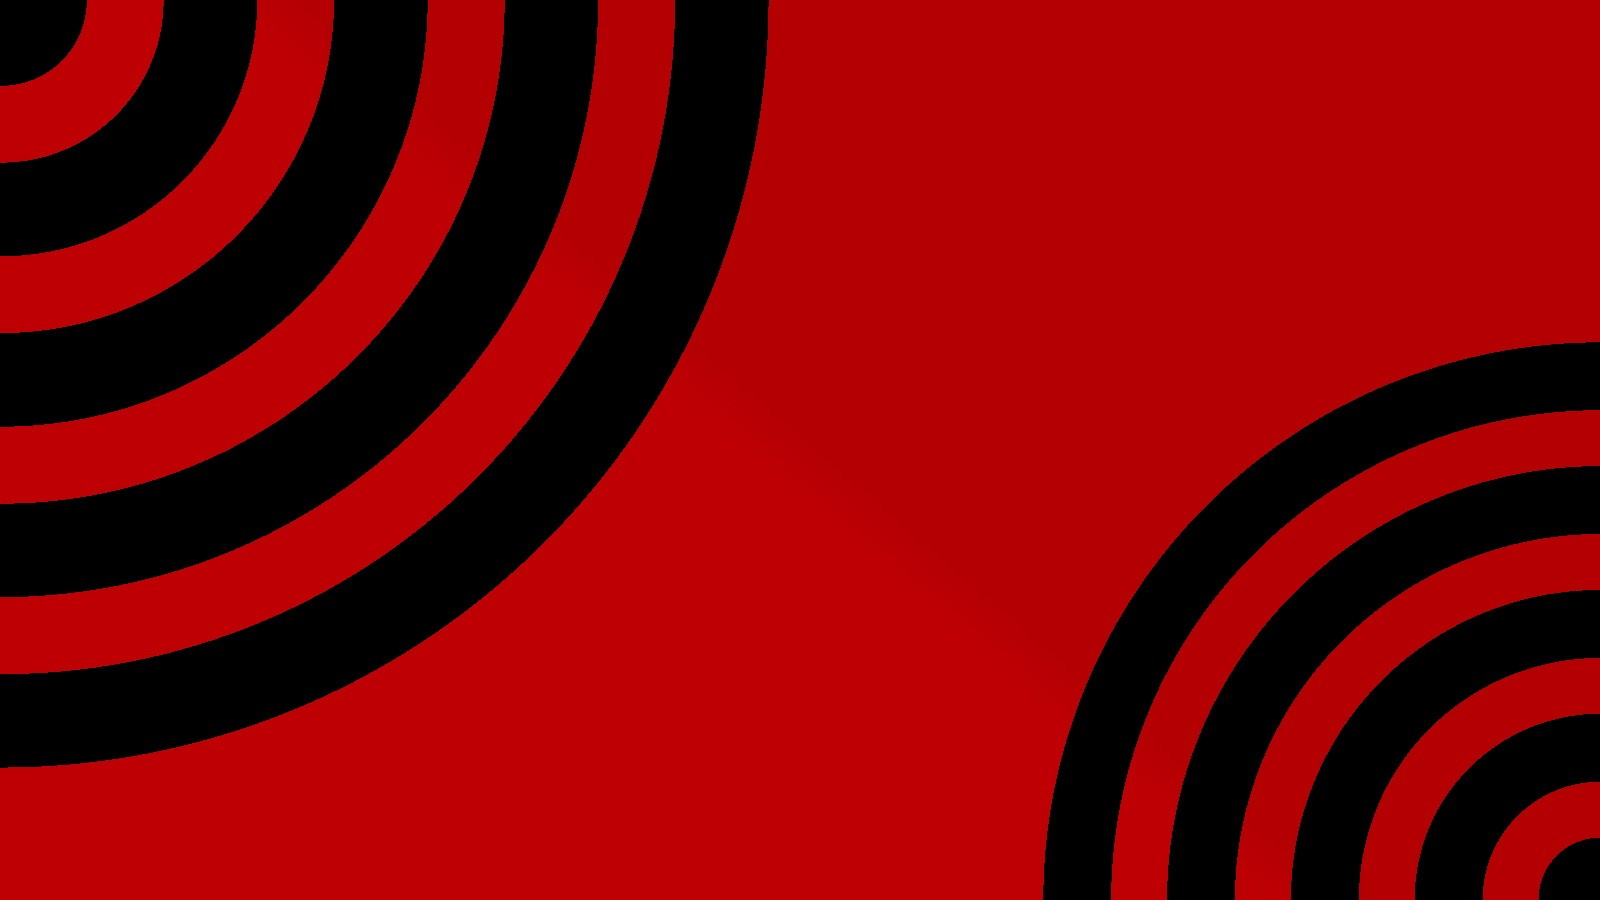 black red waves circles psychedelic simple background red background